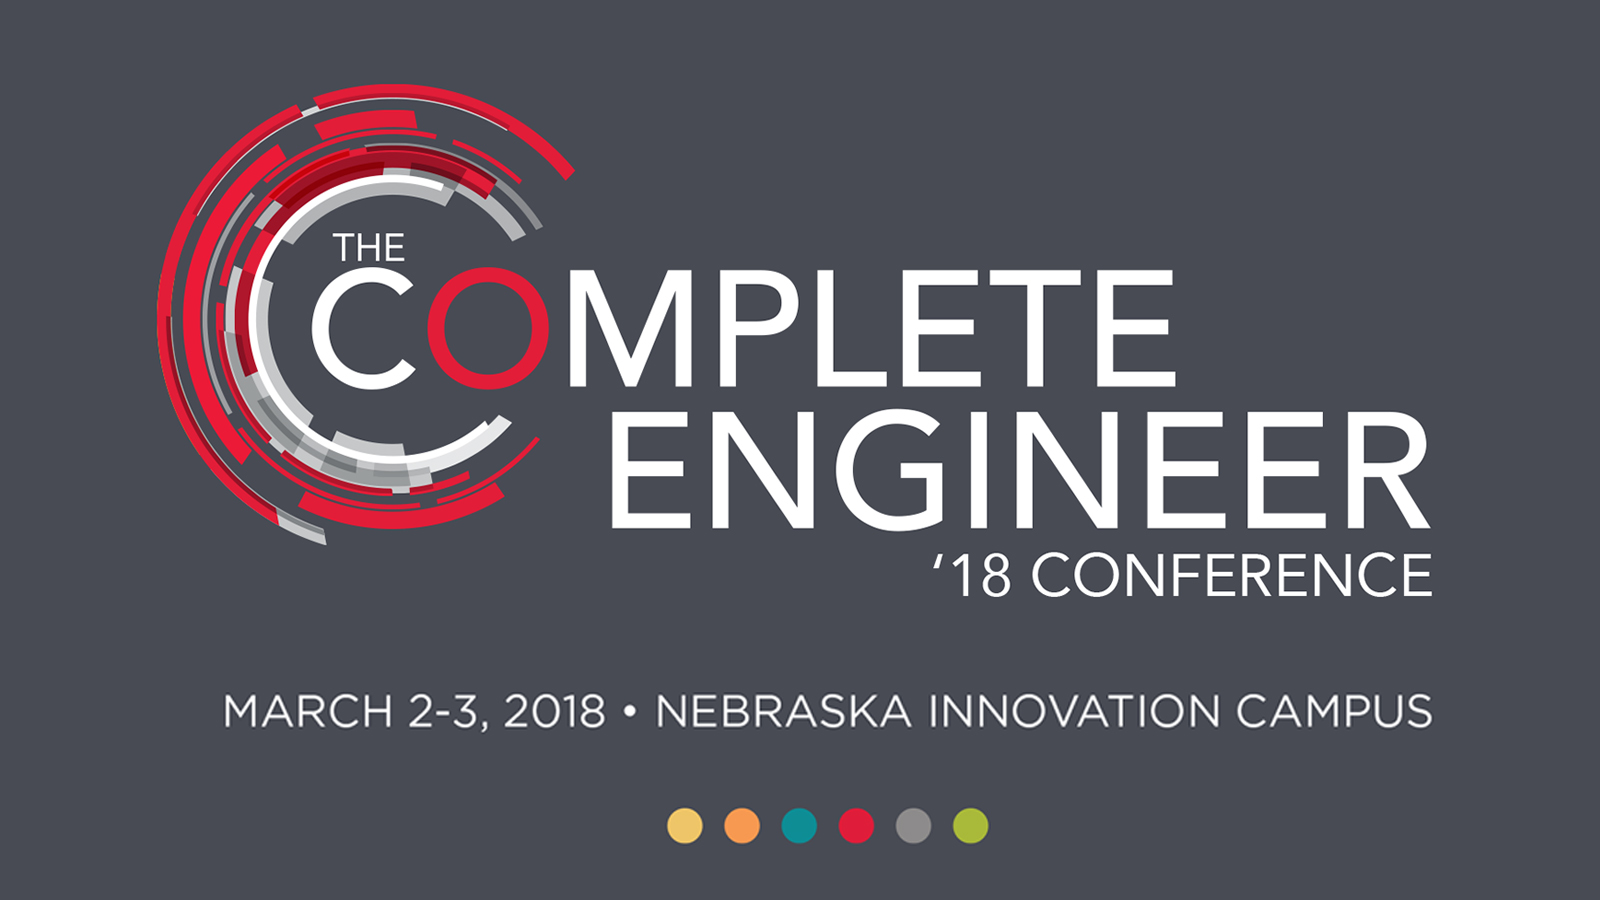 The Complete Engineer Conference is March 2-3 at Nebraska Innovation Campus.